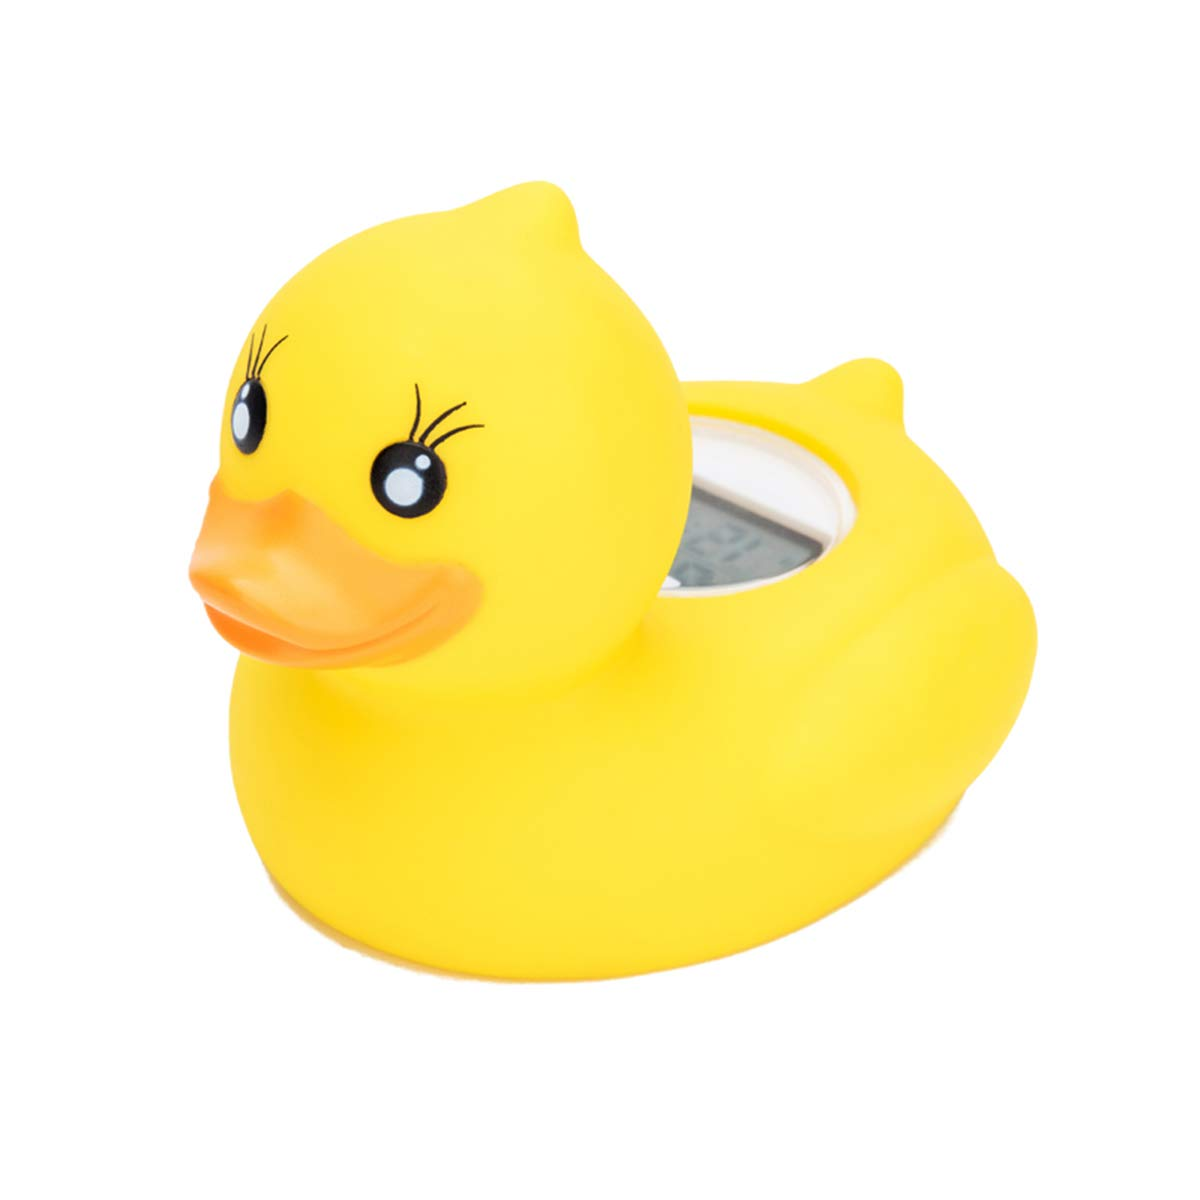 PerHouseAid Baby Bath Thermometers and Floating Bath Toy Bathtub and Swimming Pool Thermometer,Little Yellow Duck